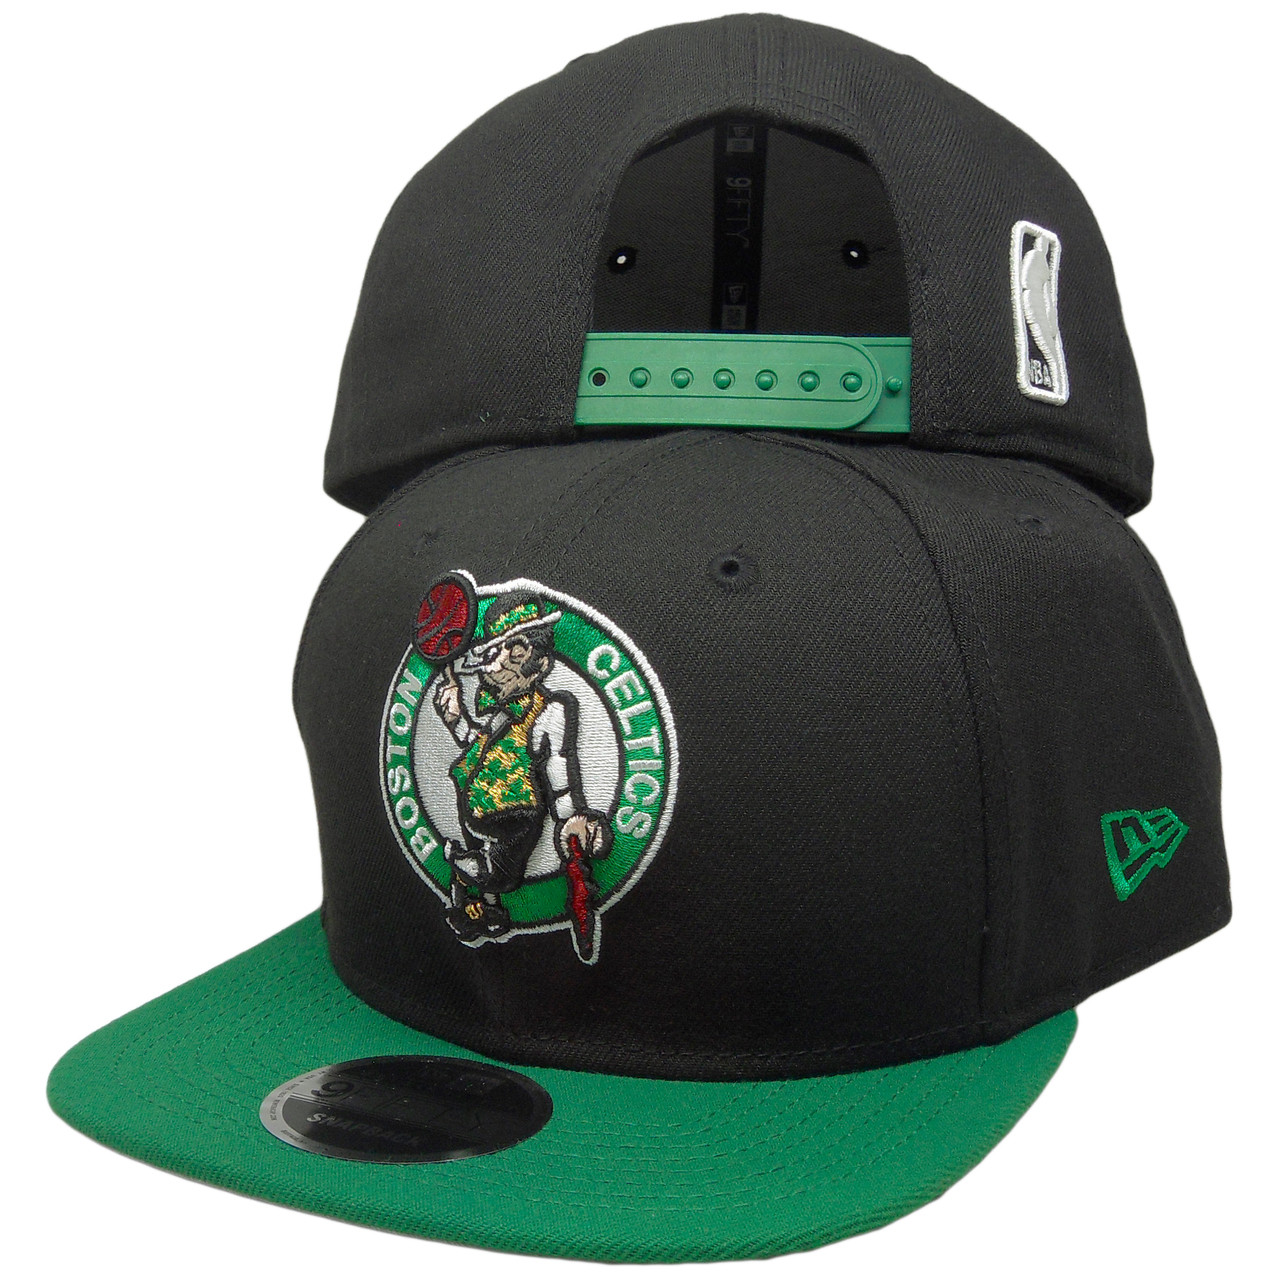 63dbdd04 Boston Celtics New Era Basic 2Tone 9Fifty Snapback - Black, Kelly, White -  ECapsUnlimited.com